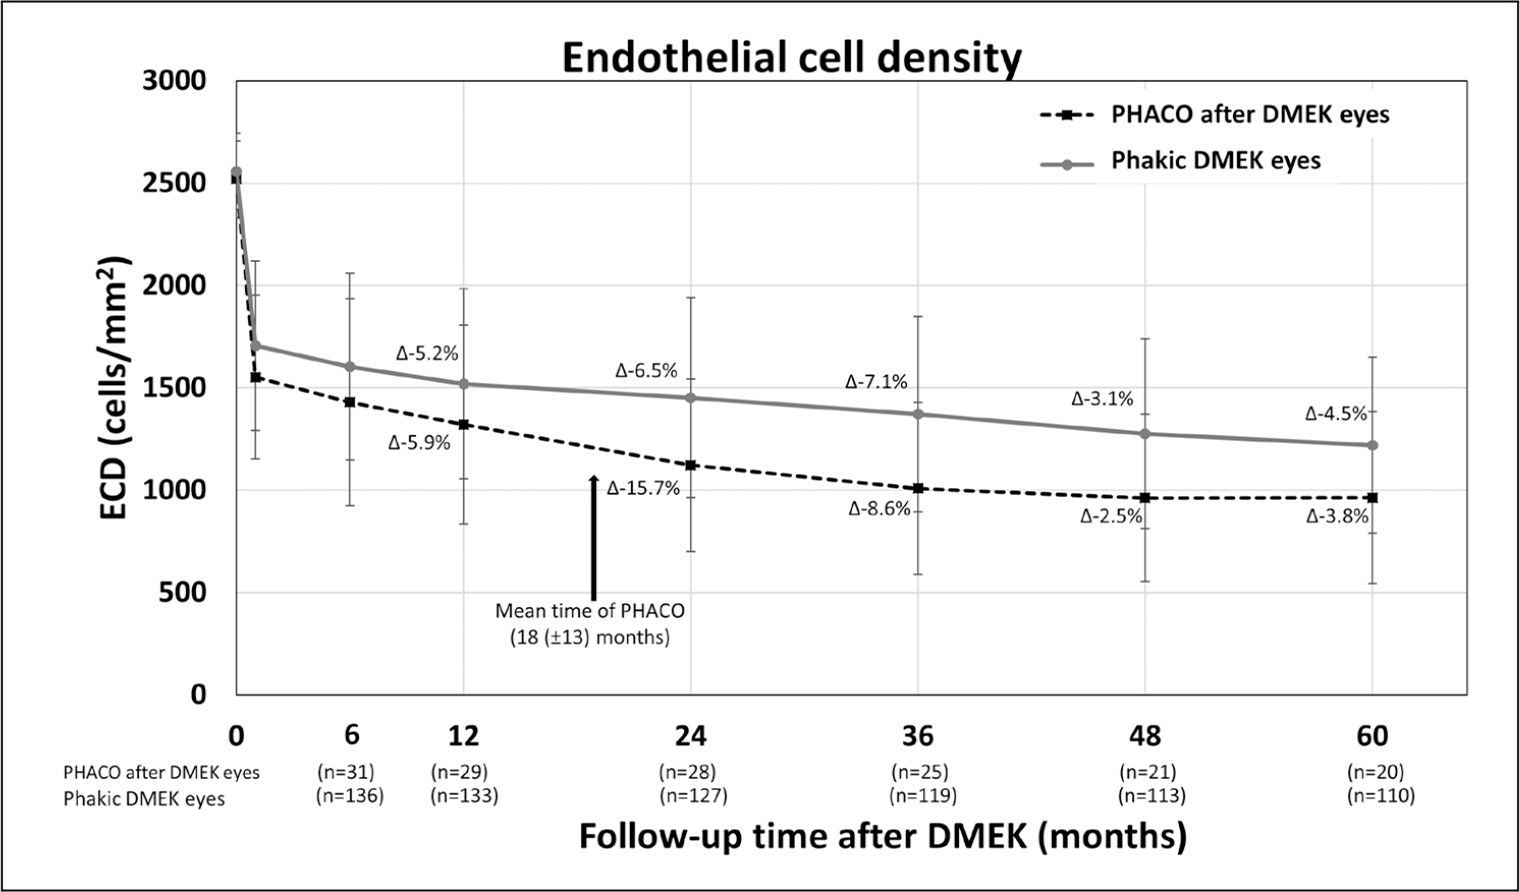 Endothelial cell density (ECD) after phakic Descemet membrane endothelial keratoplasty (DMEK). ECD until the 5-year follow-up of patients who underwent phacoemulsification (PHACO) after DMEK (dashed line) and for phakic patients with DMEK without cataract extraction after DMEK (solid line). The ECD decrease between follow-up visits is presented by Δ (delta) in percentage. The arrow denotes the mean time of phacoemulsification after DMEK.